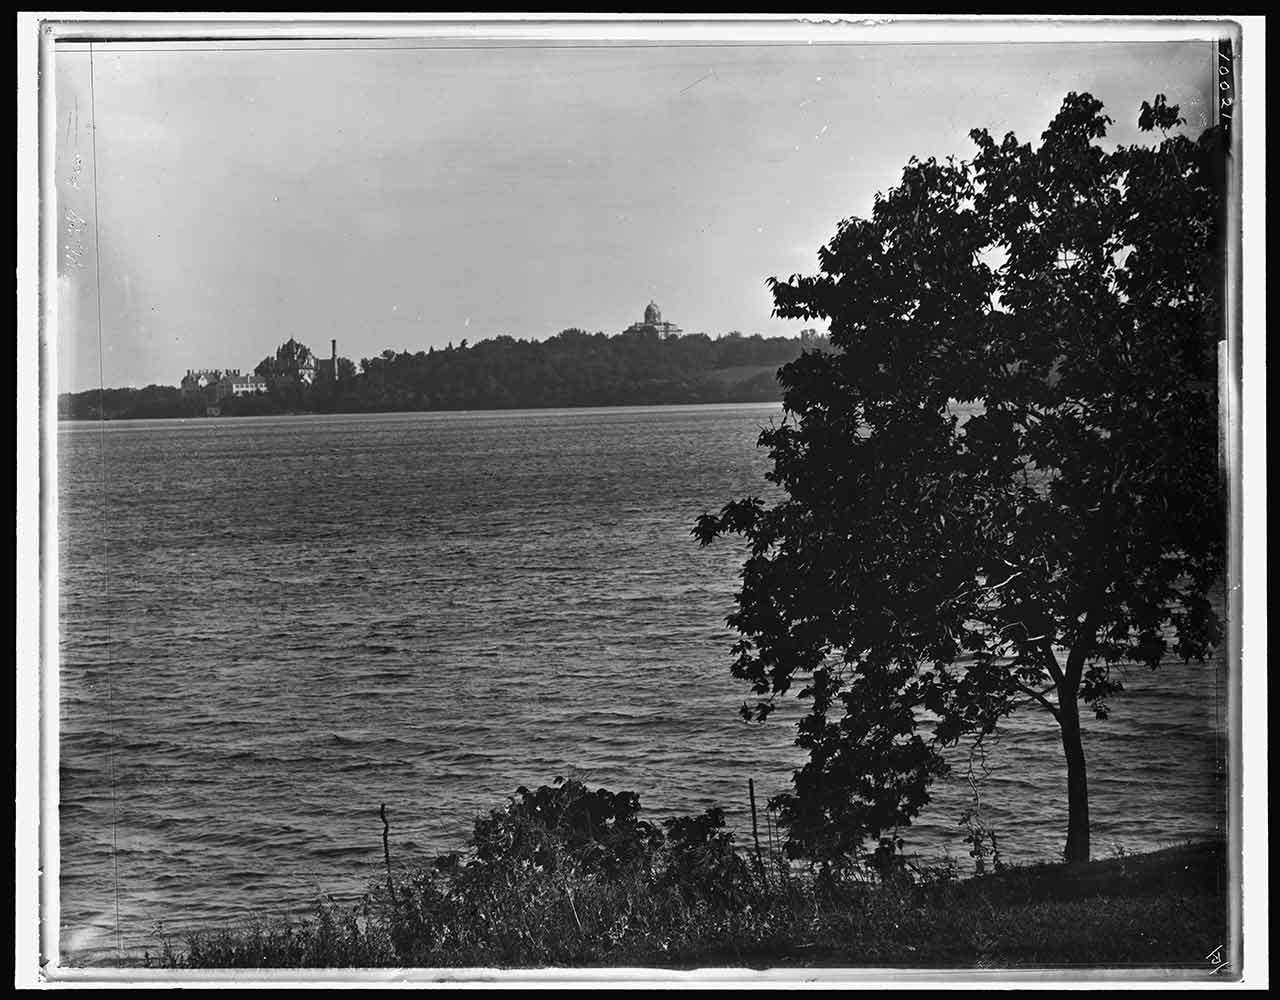 Picnic Point, 1898